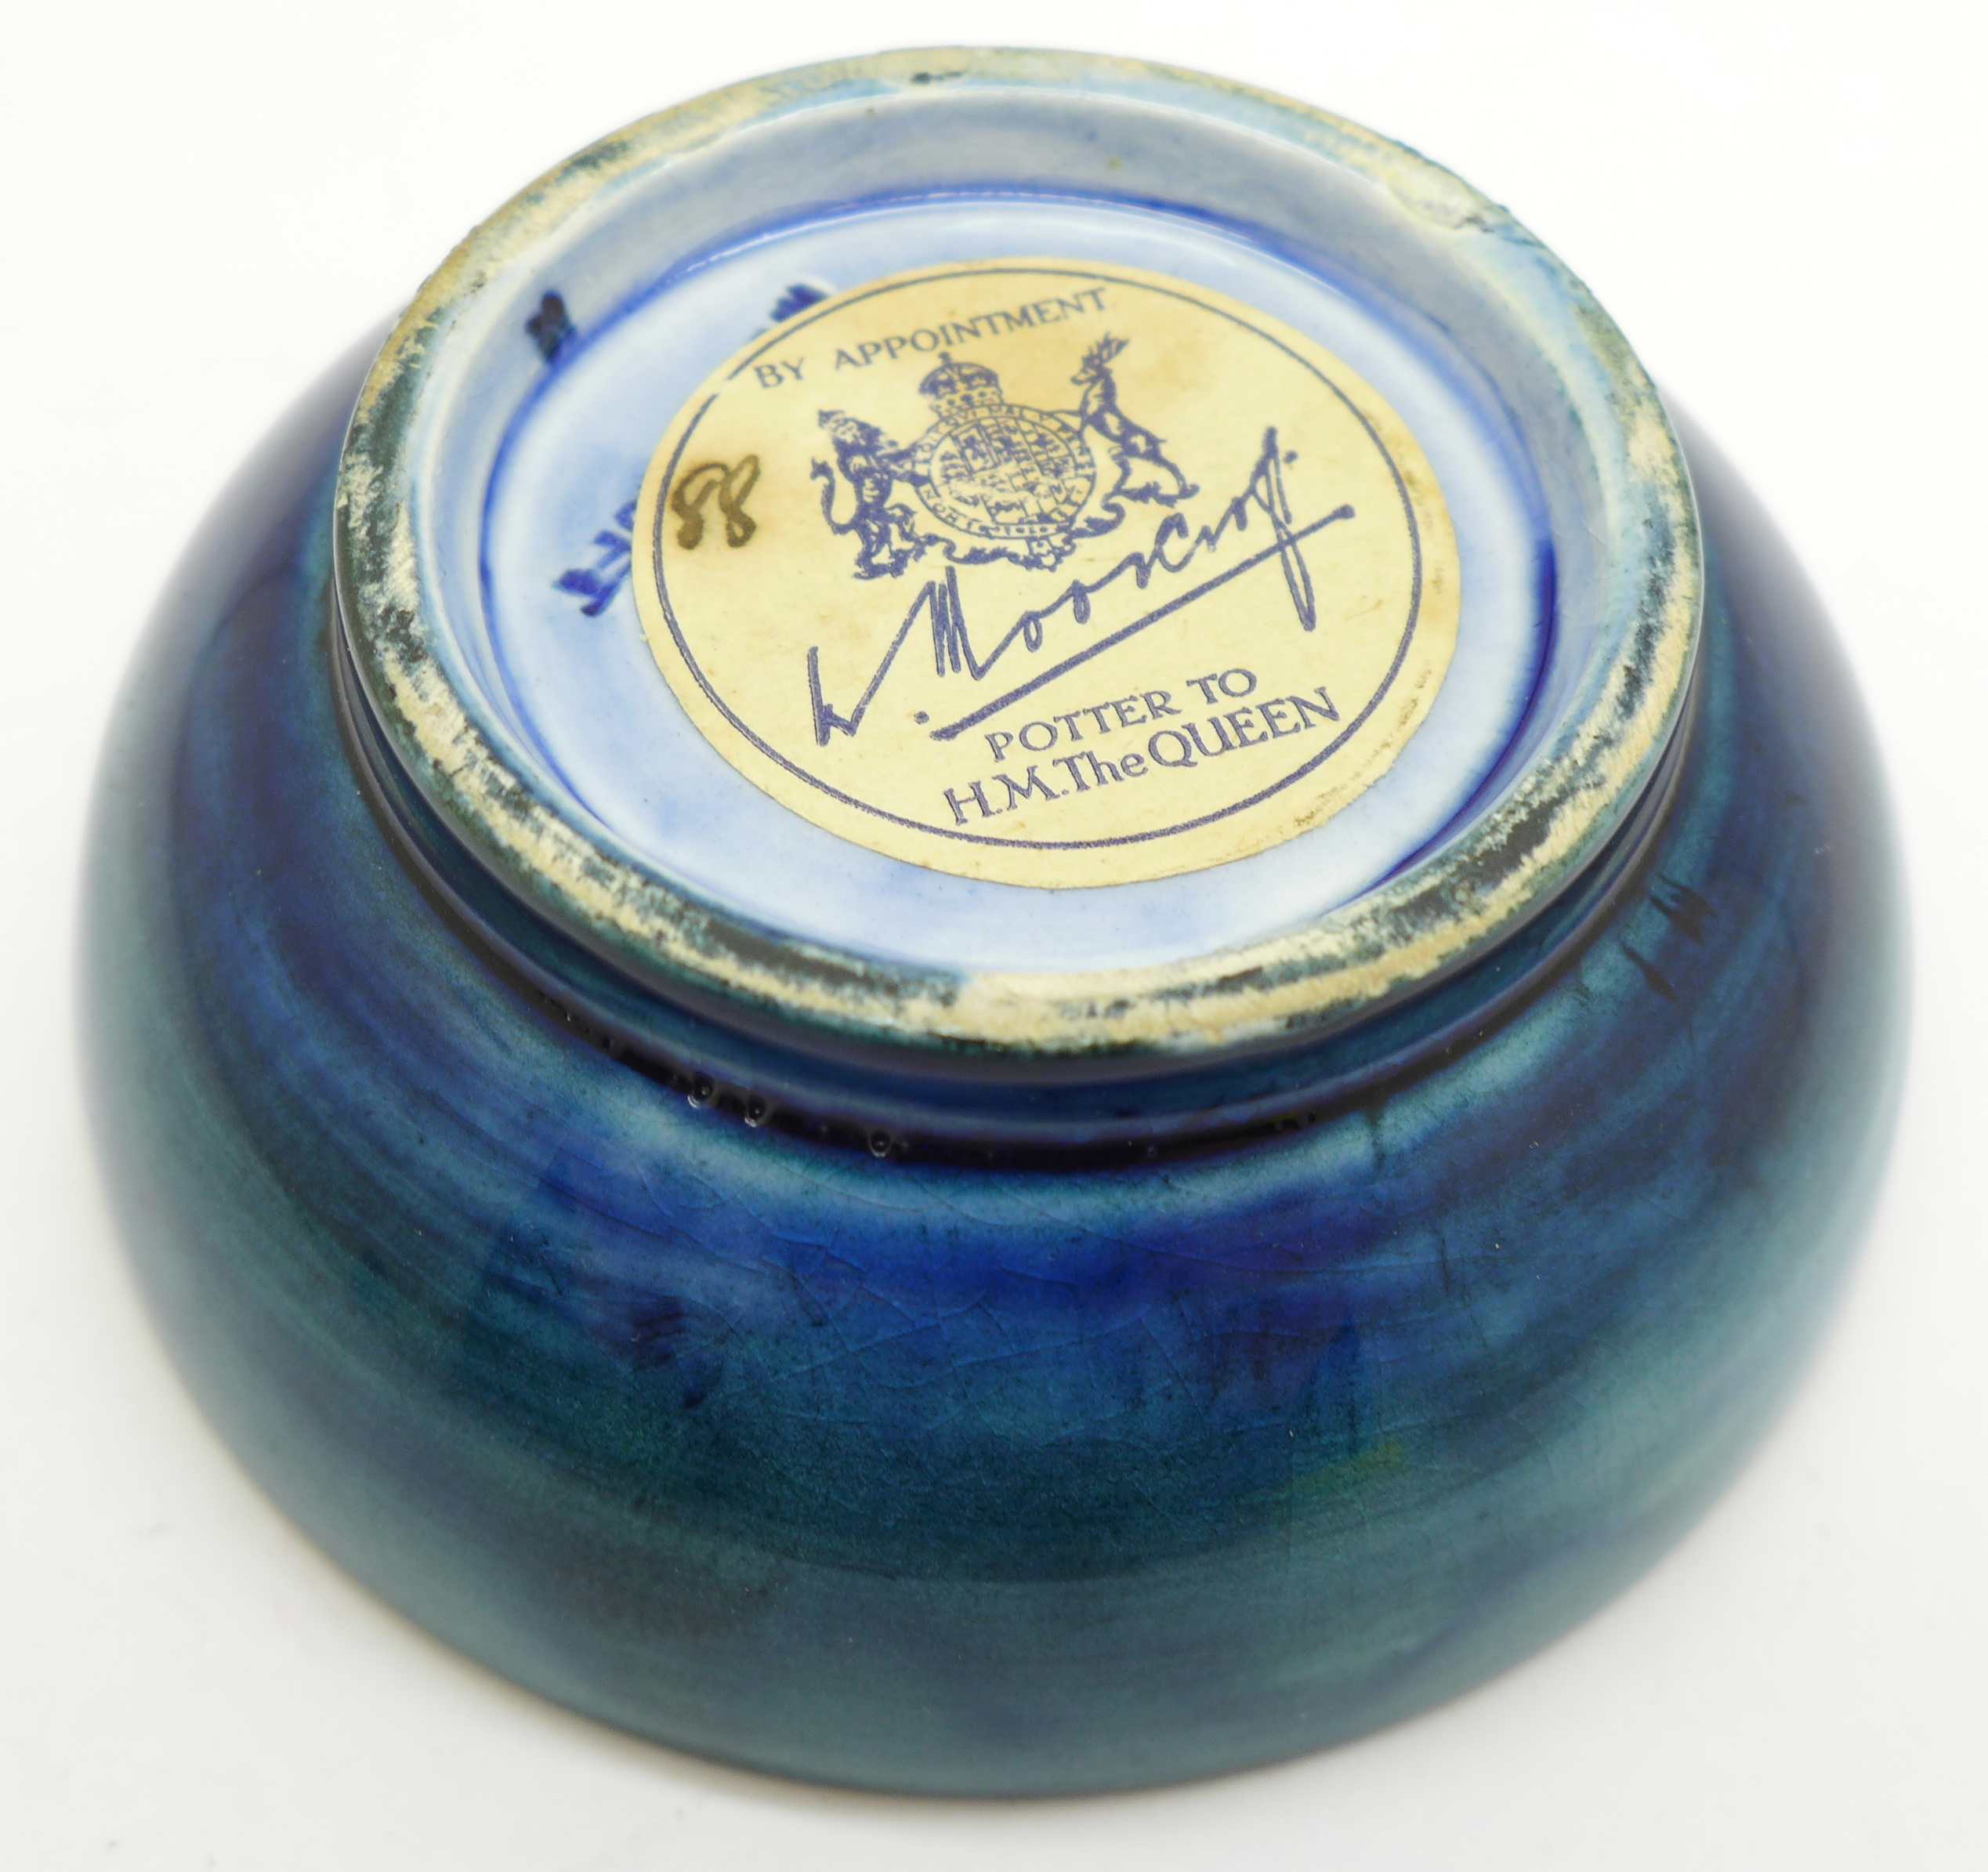 A small Moorcroft pansy bowl, with paper label, By Appointment to H.M. The Queen, 78mm diameter - Image 5 of 6